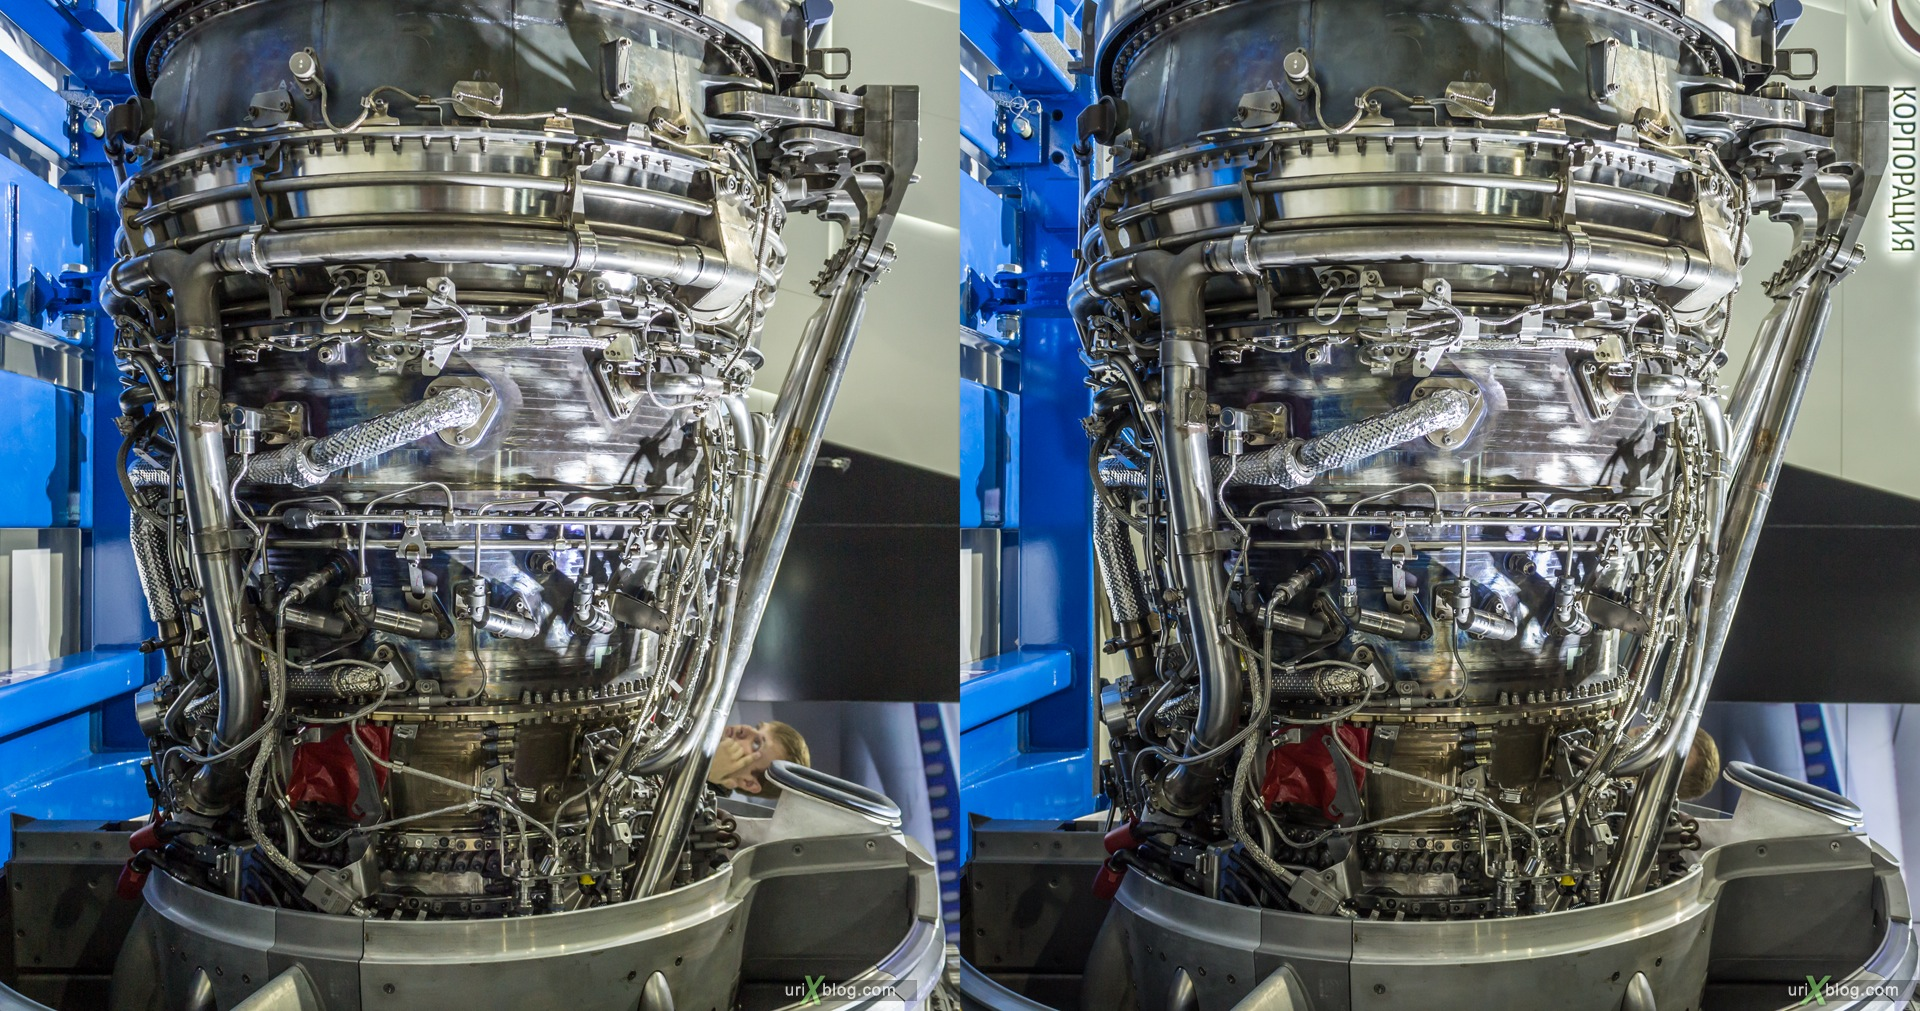 2013, MAKS, International Aviation and Space Salon, Russia, Ramenskoye airfield, airplane, engine, turbine, 3D, stereo pair, cross-eyed, crossview, cross view stereo pair, stereoscopic